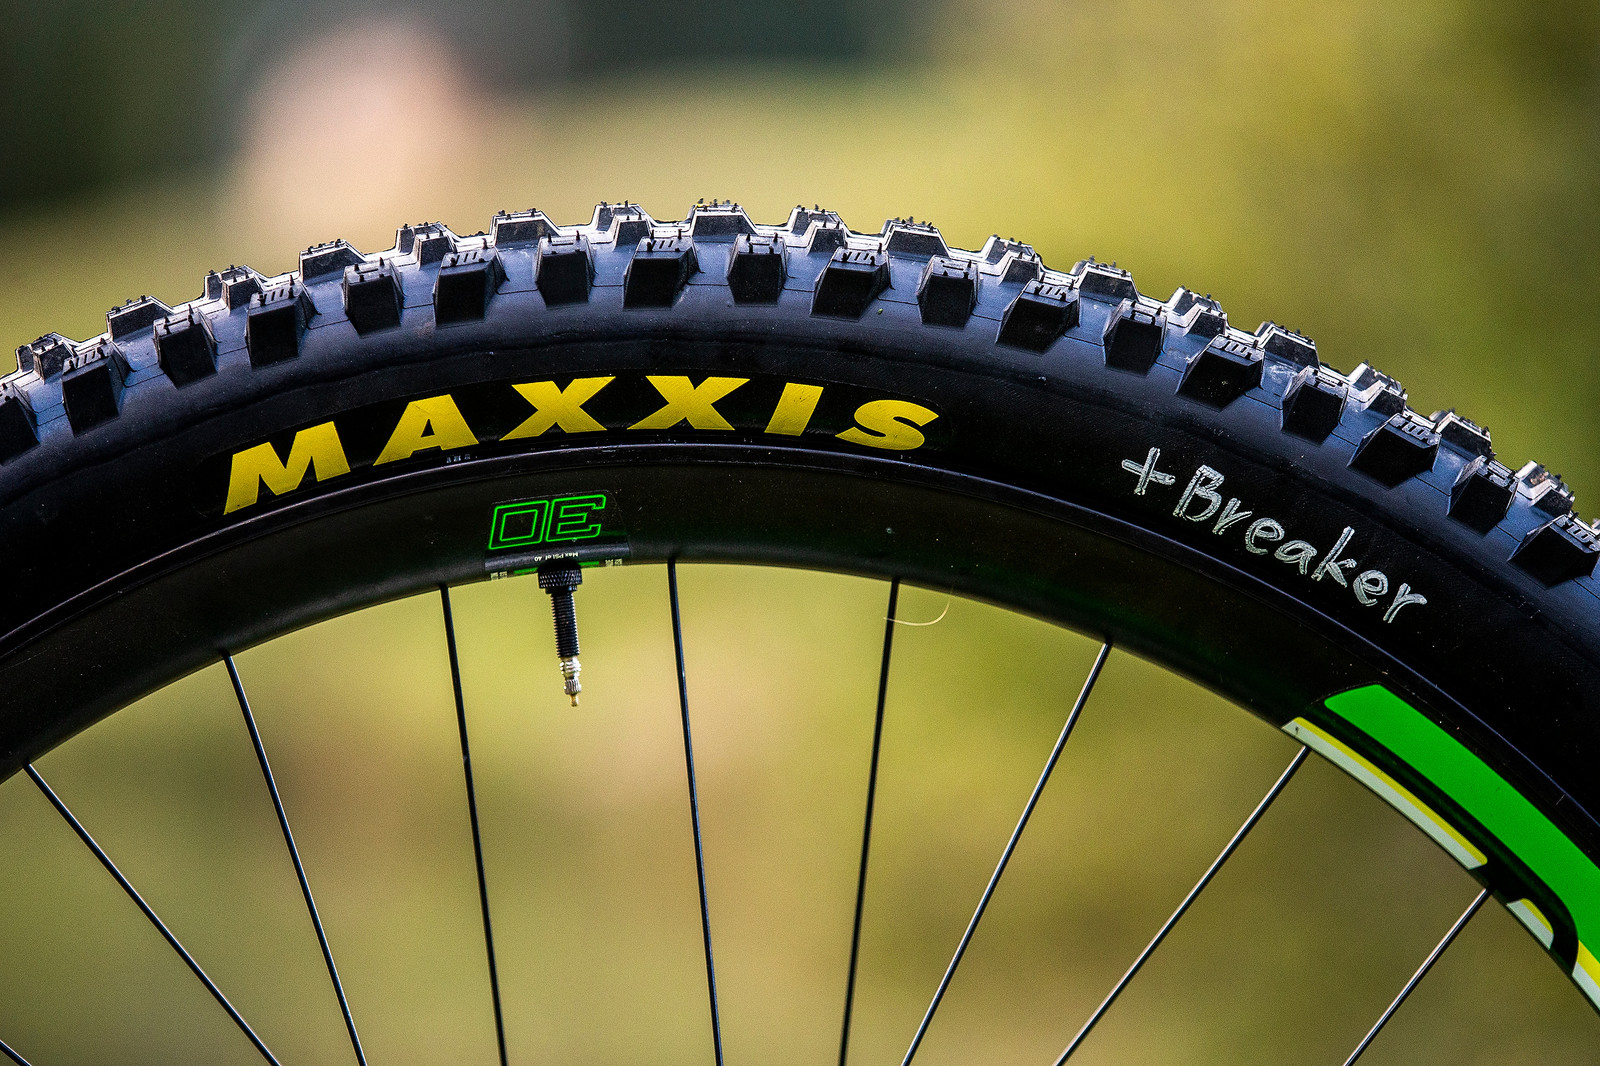 ENVE and Maxxis - WORLD CHAMPS BIKE - Dean Lucas' Intense M29 - Mountain Biking Pictures - Vital MTB